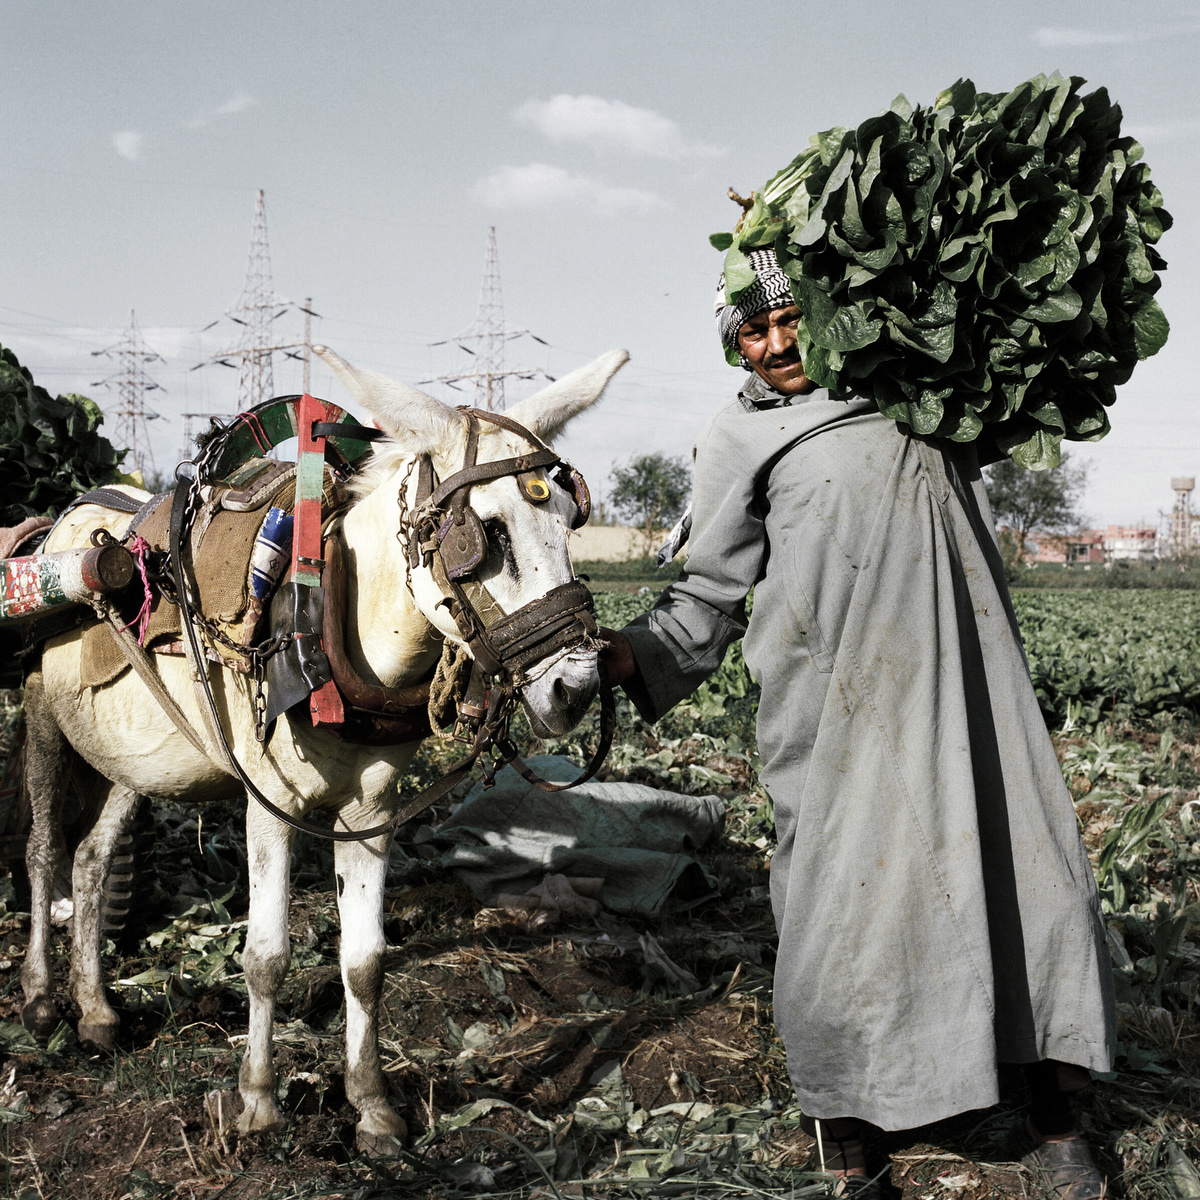 A farmer gathers lettus fresh from a field.